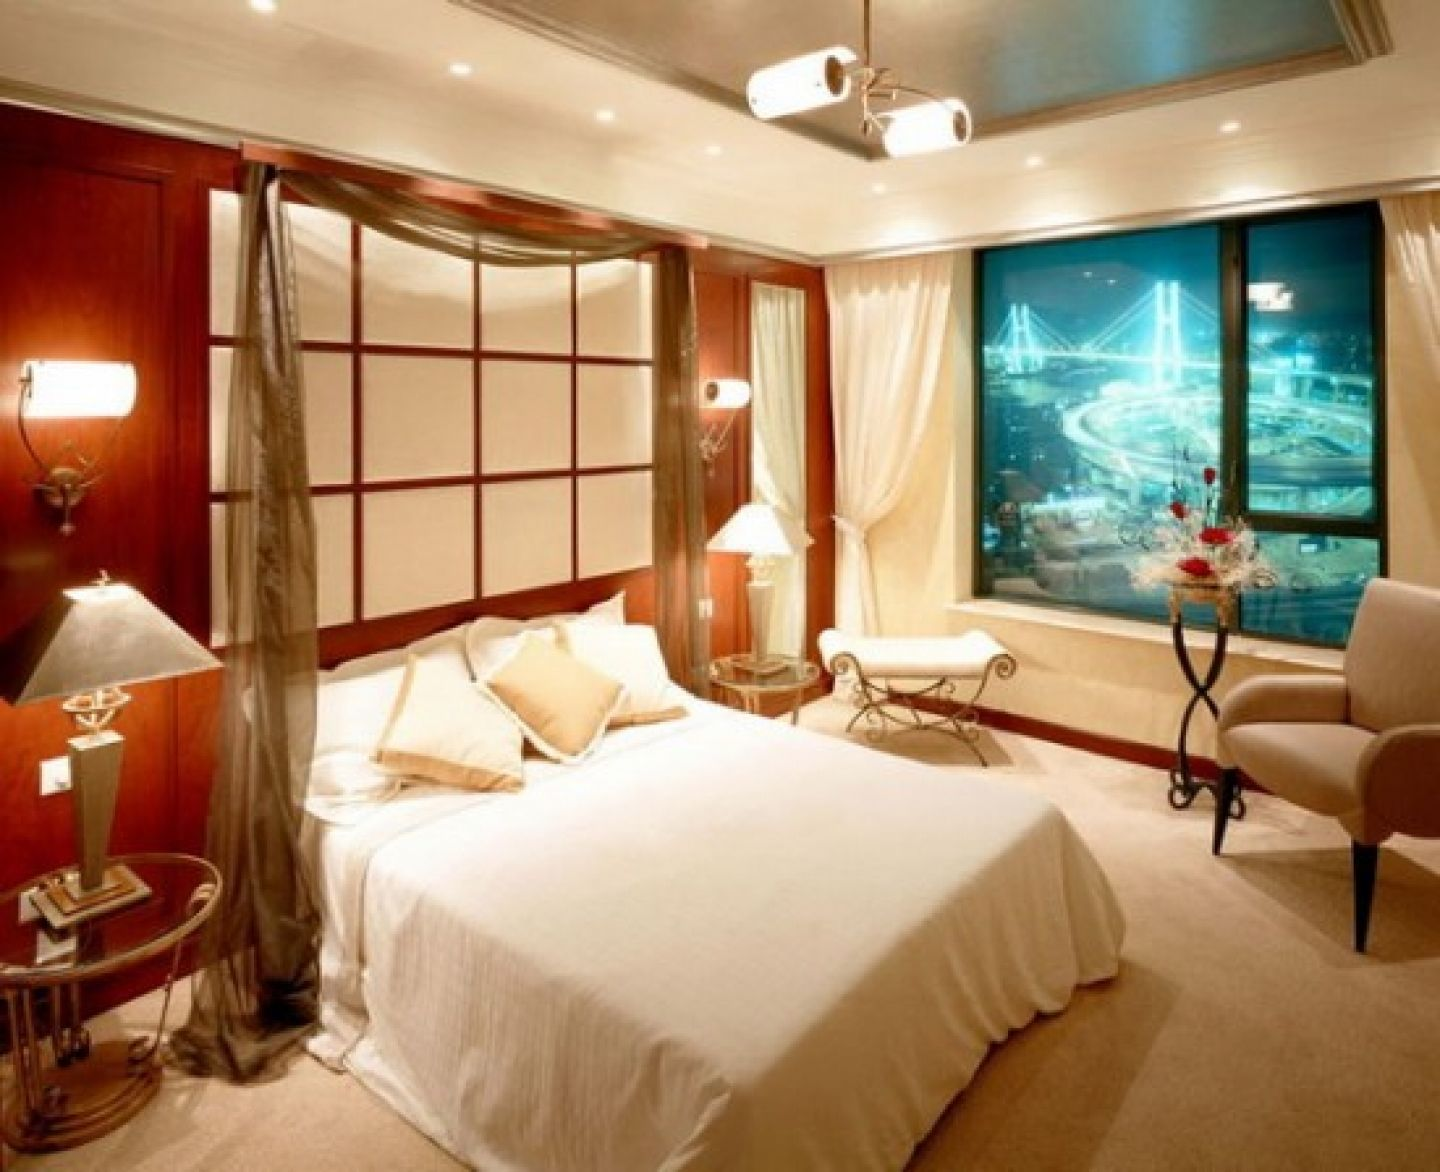 Bedroom For Couples Designs Simple Hot Bedroom Decorating Ideas For Couples Luxury Lighting  Bedroom 2018